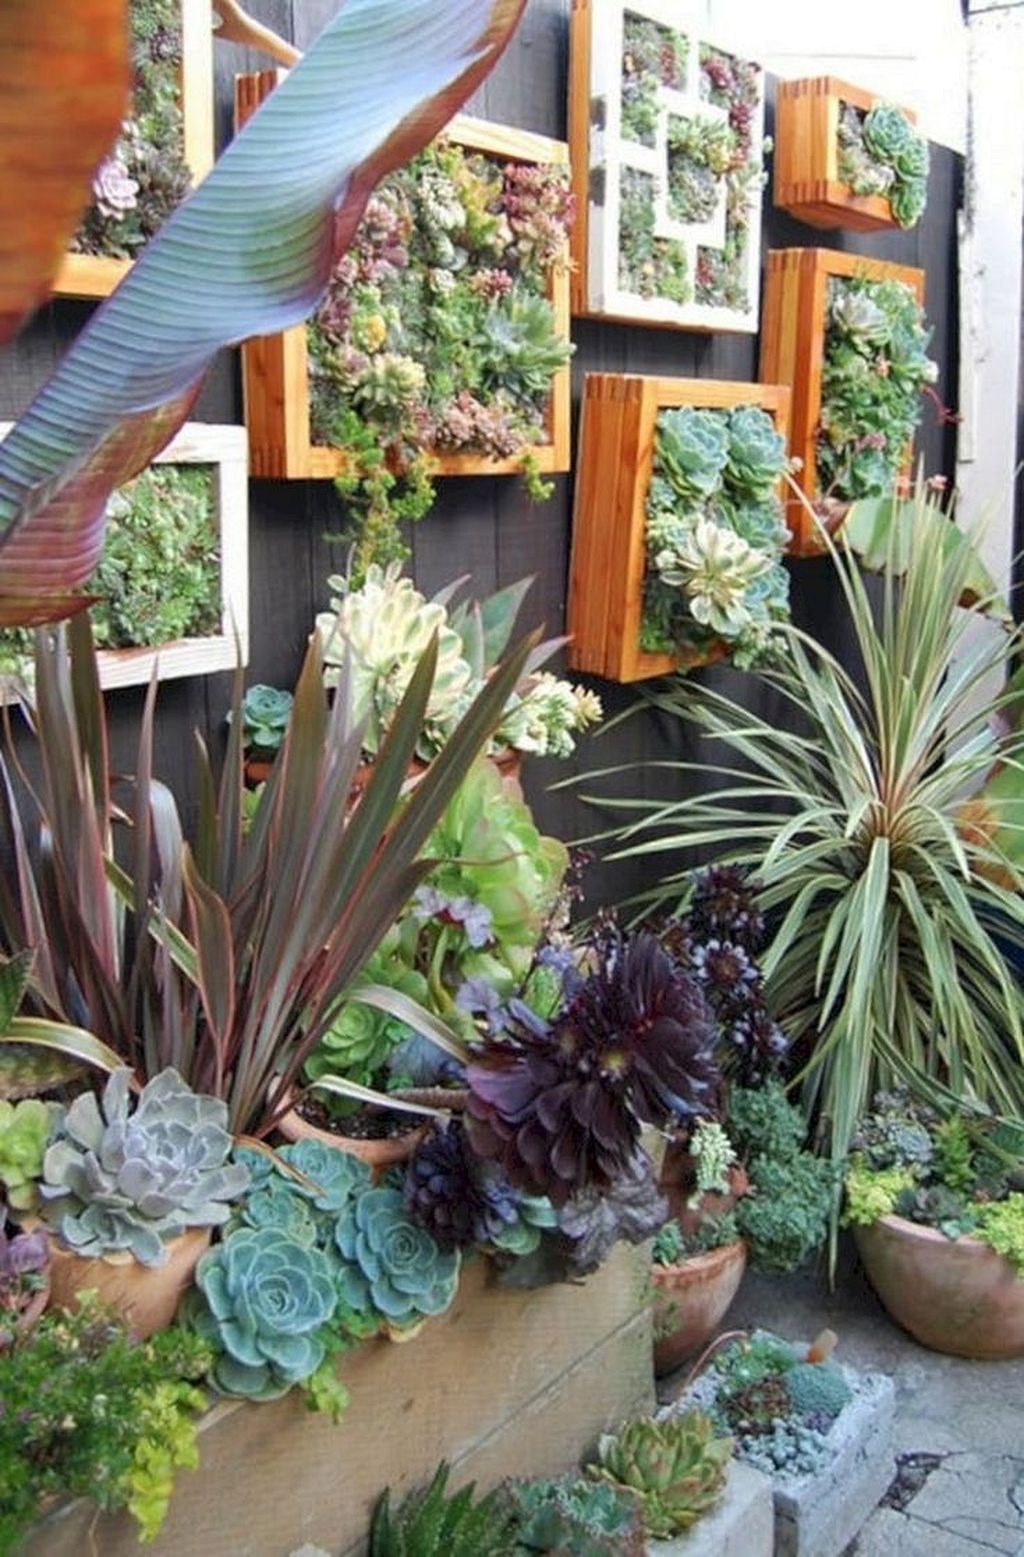 Pin by adágio images on bonsai terrariums orchids airplants